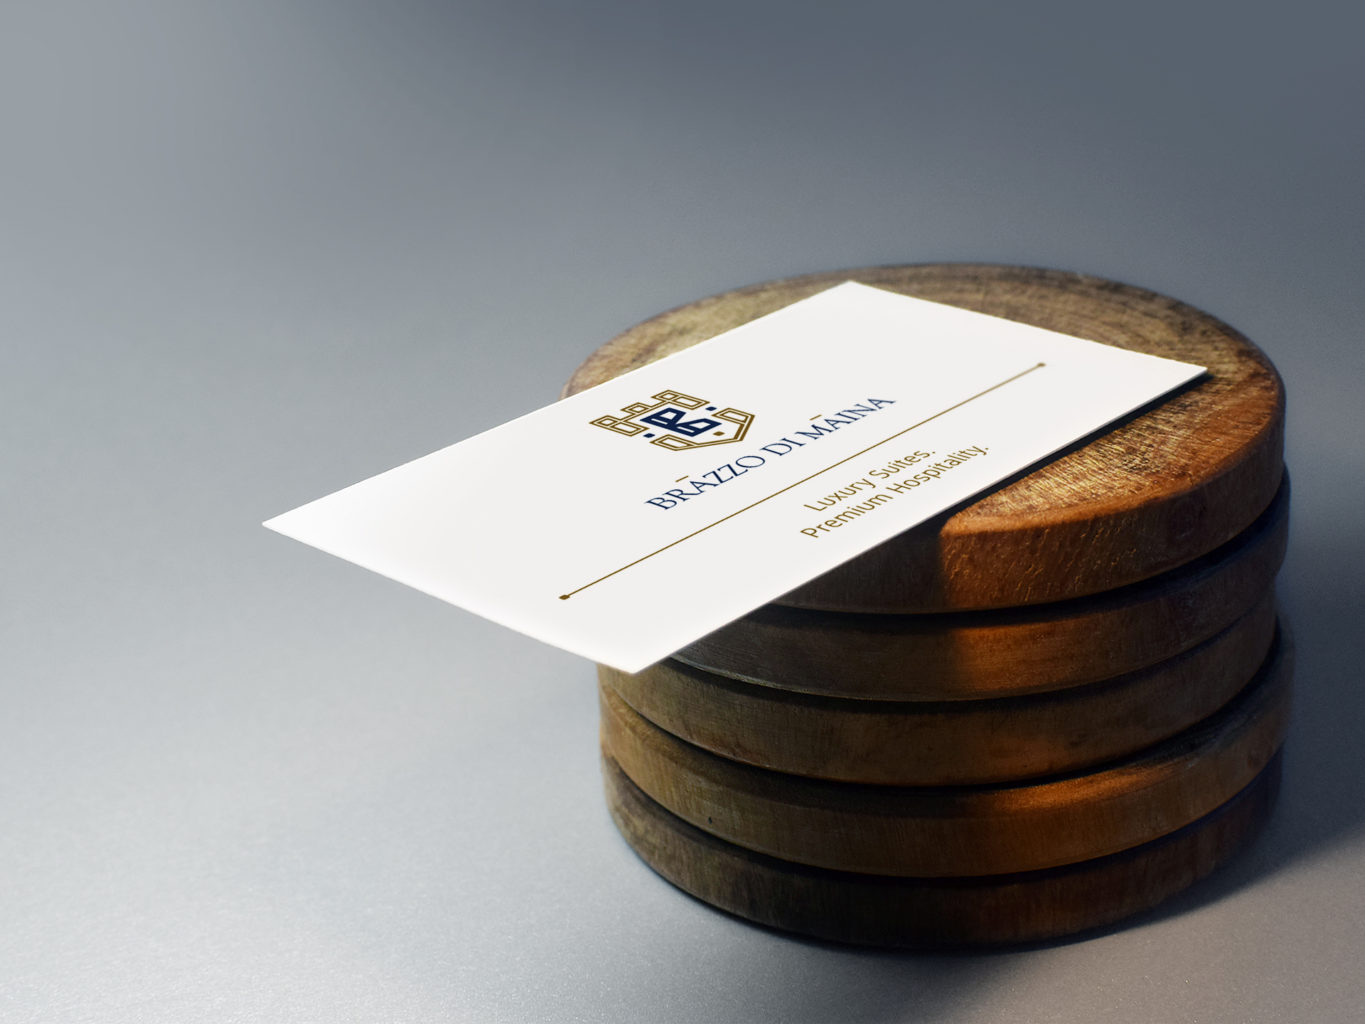 brazzo di maina business card on a wooden surface